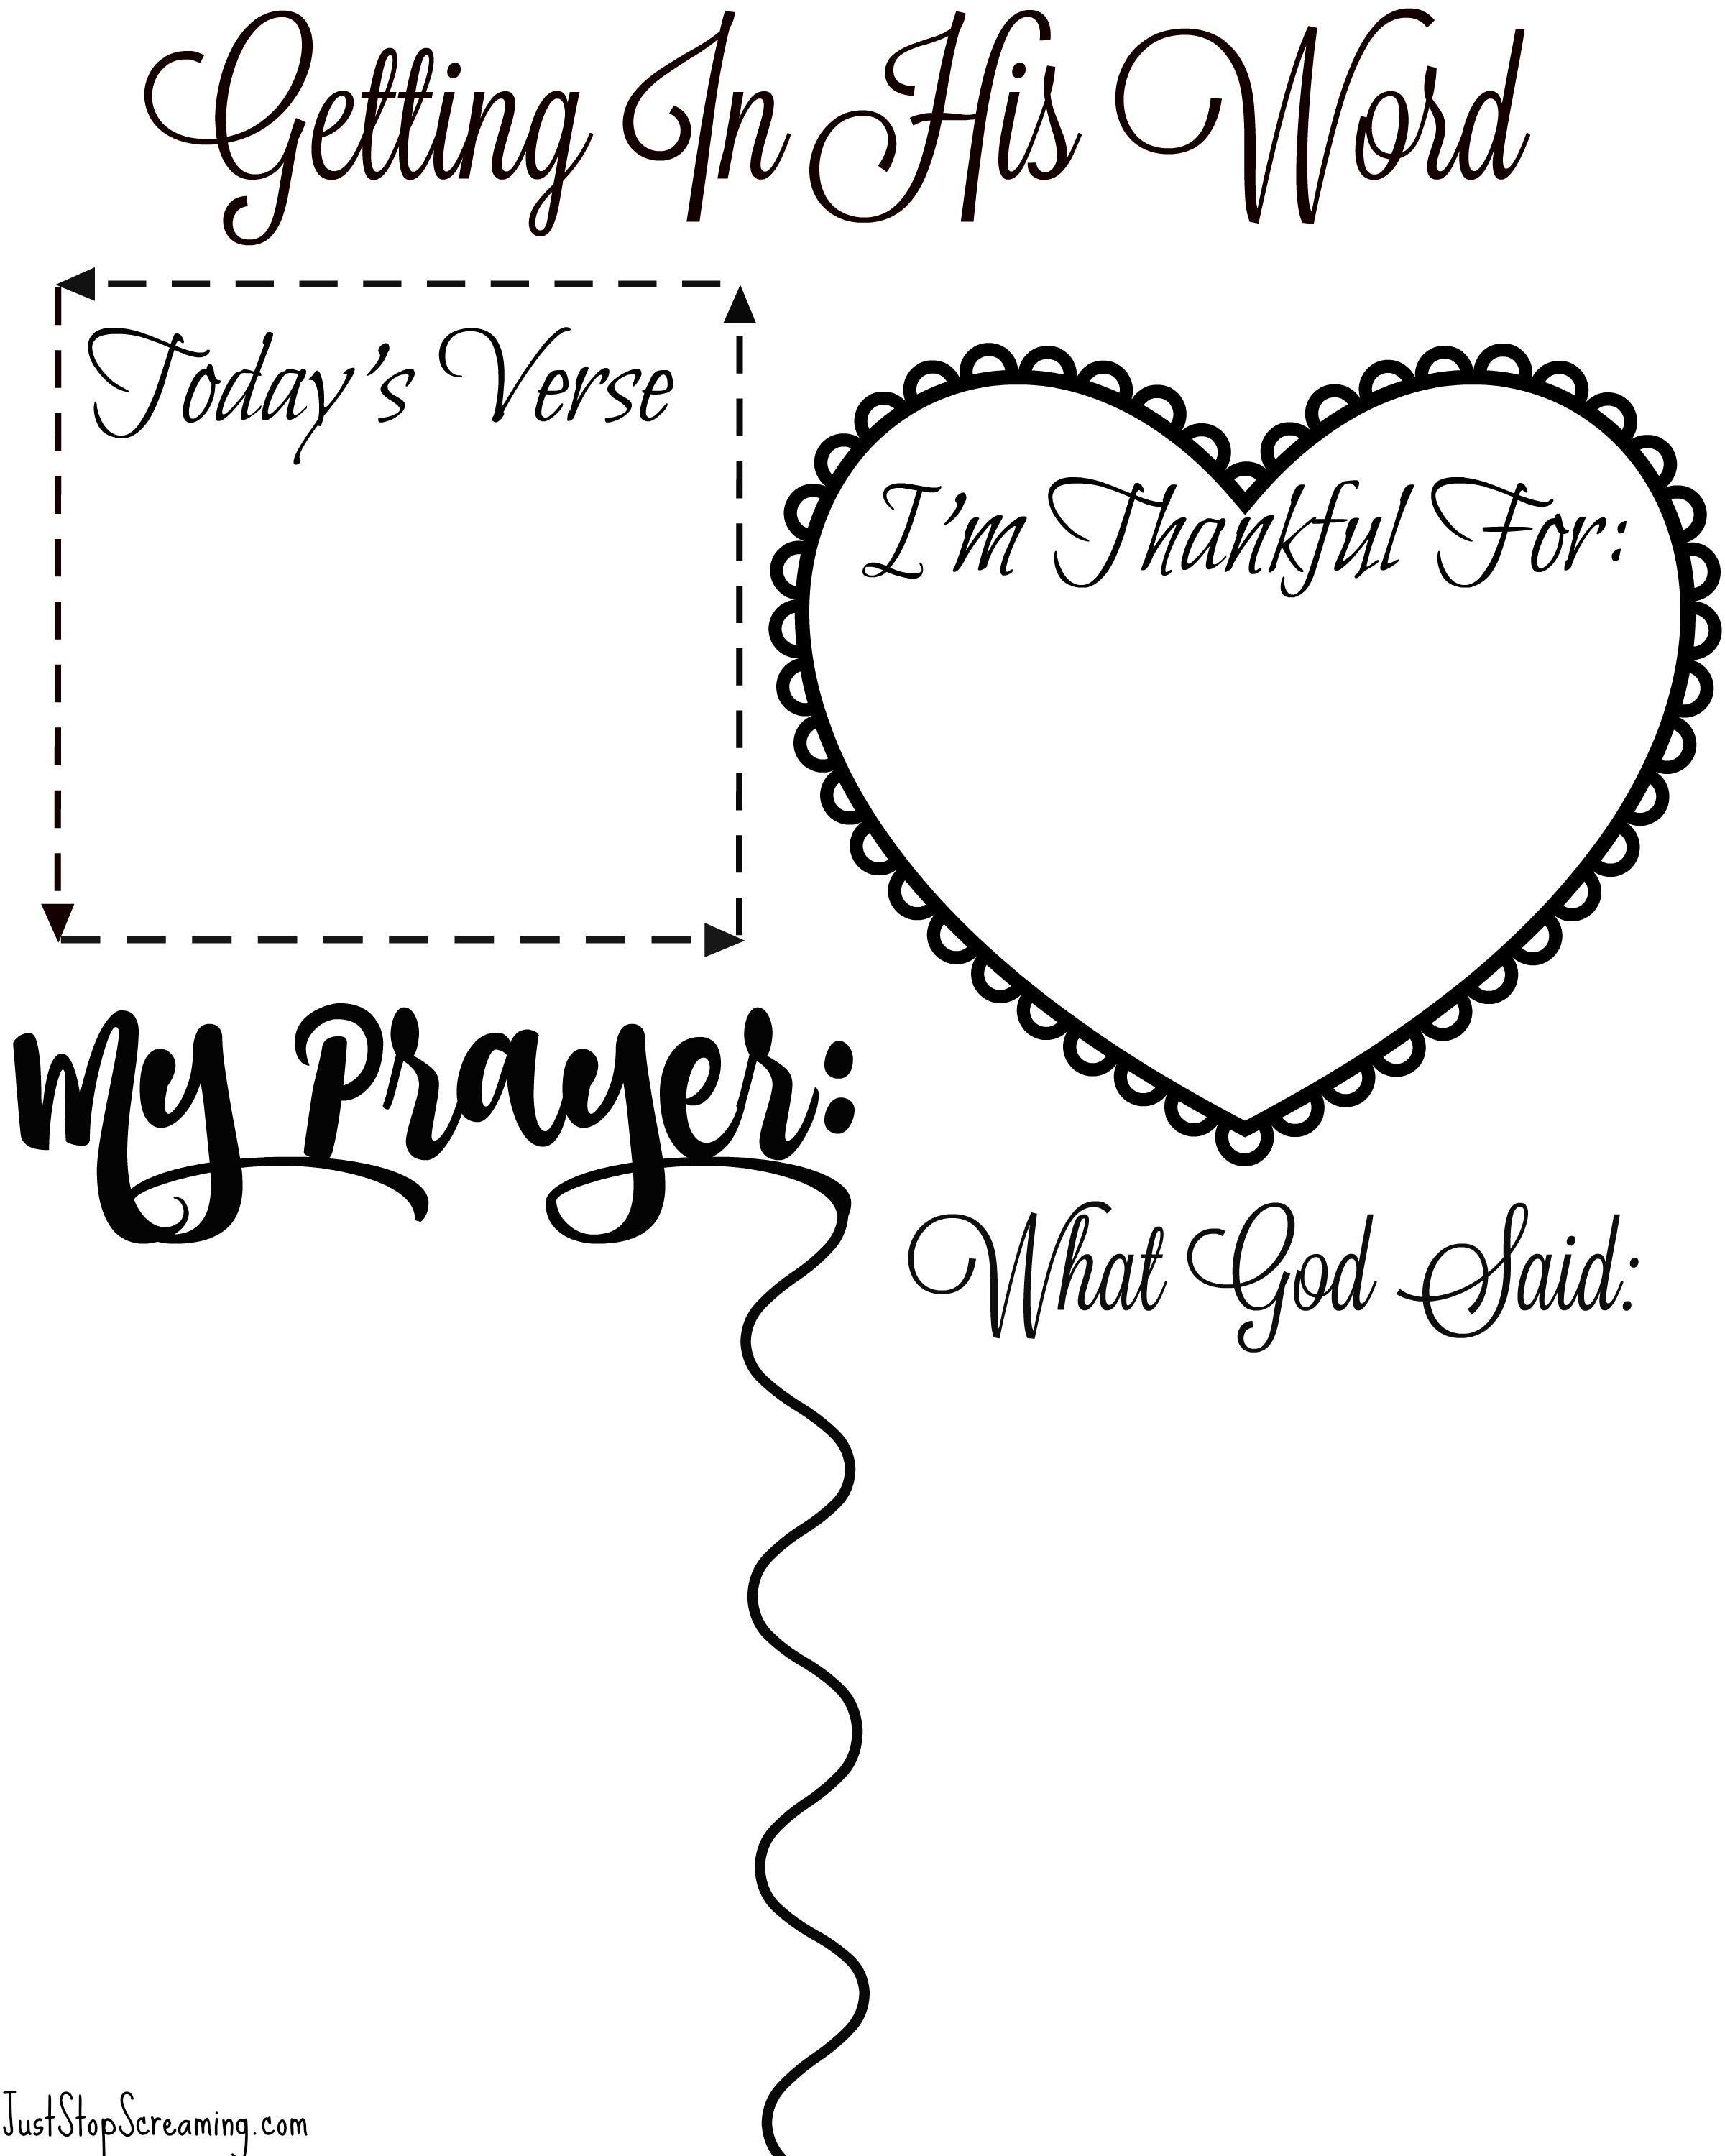 Free Bible Study Printable For Adults And Kids - Free Printable Children's Bible Lessons